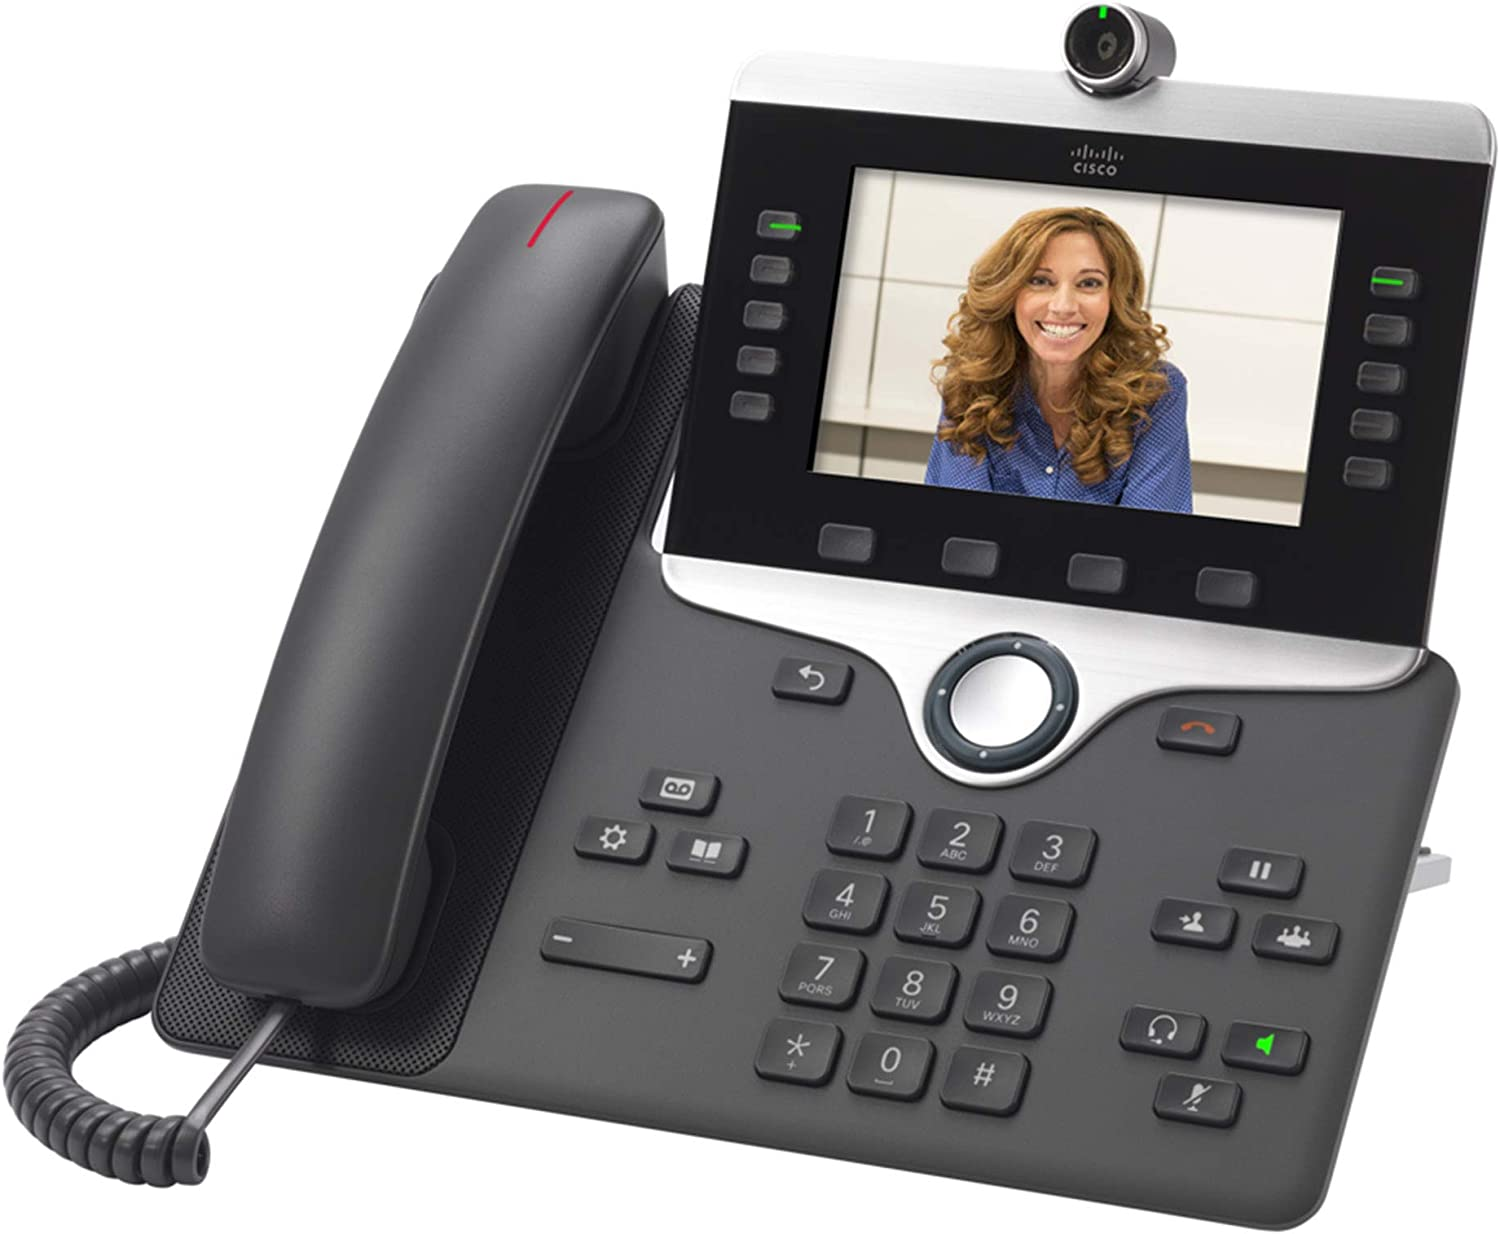 Cisco 8800 Ser CP-8865-K9 Unified IP Endpoint VoIP Video Phone w Camera /& Stand